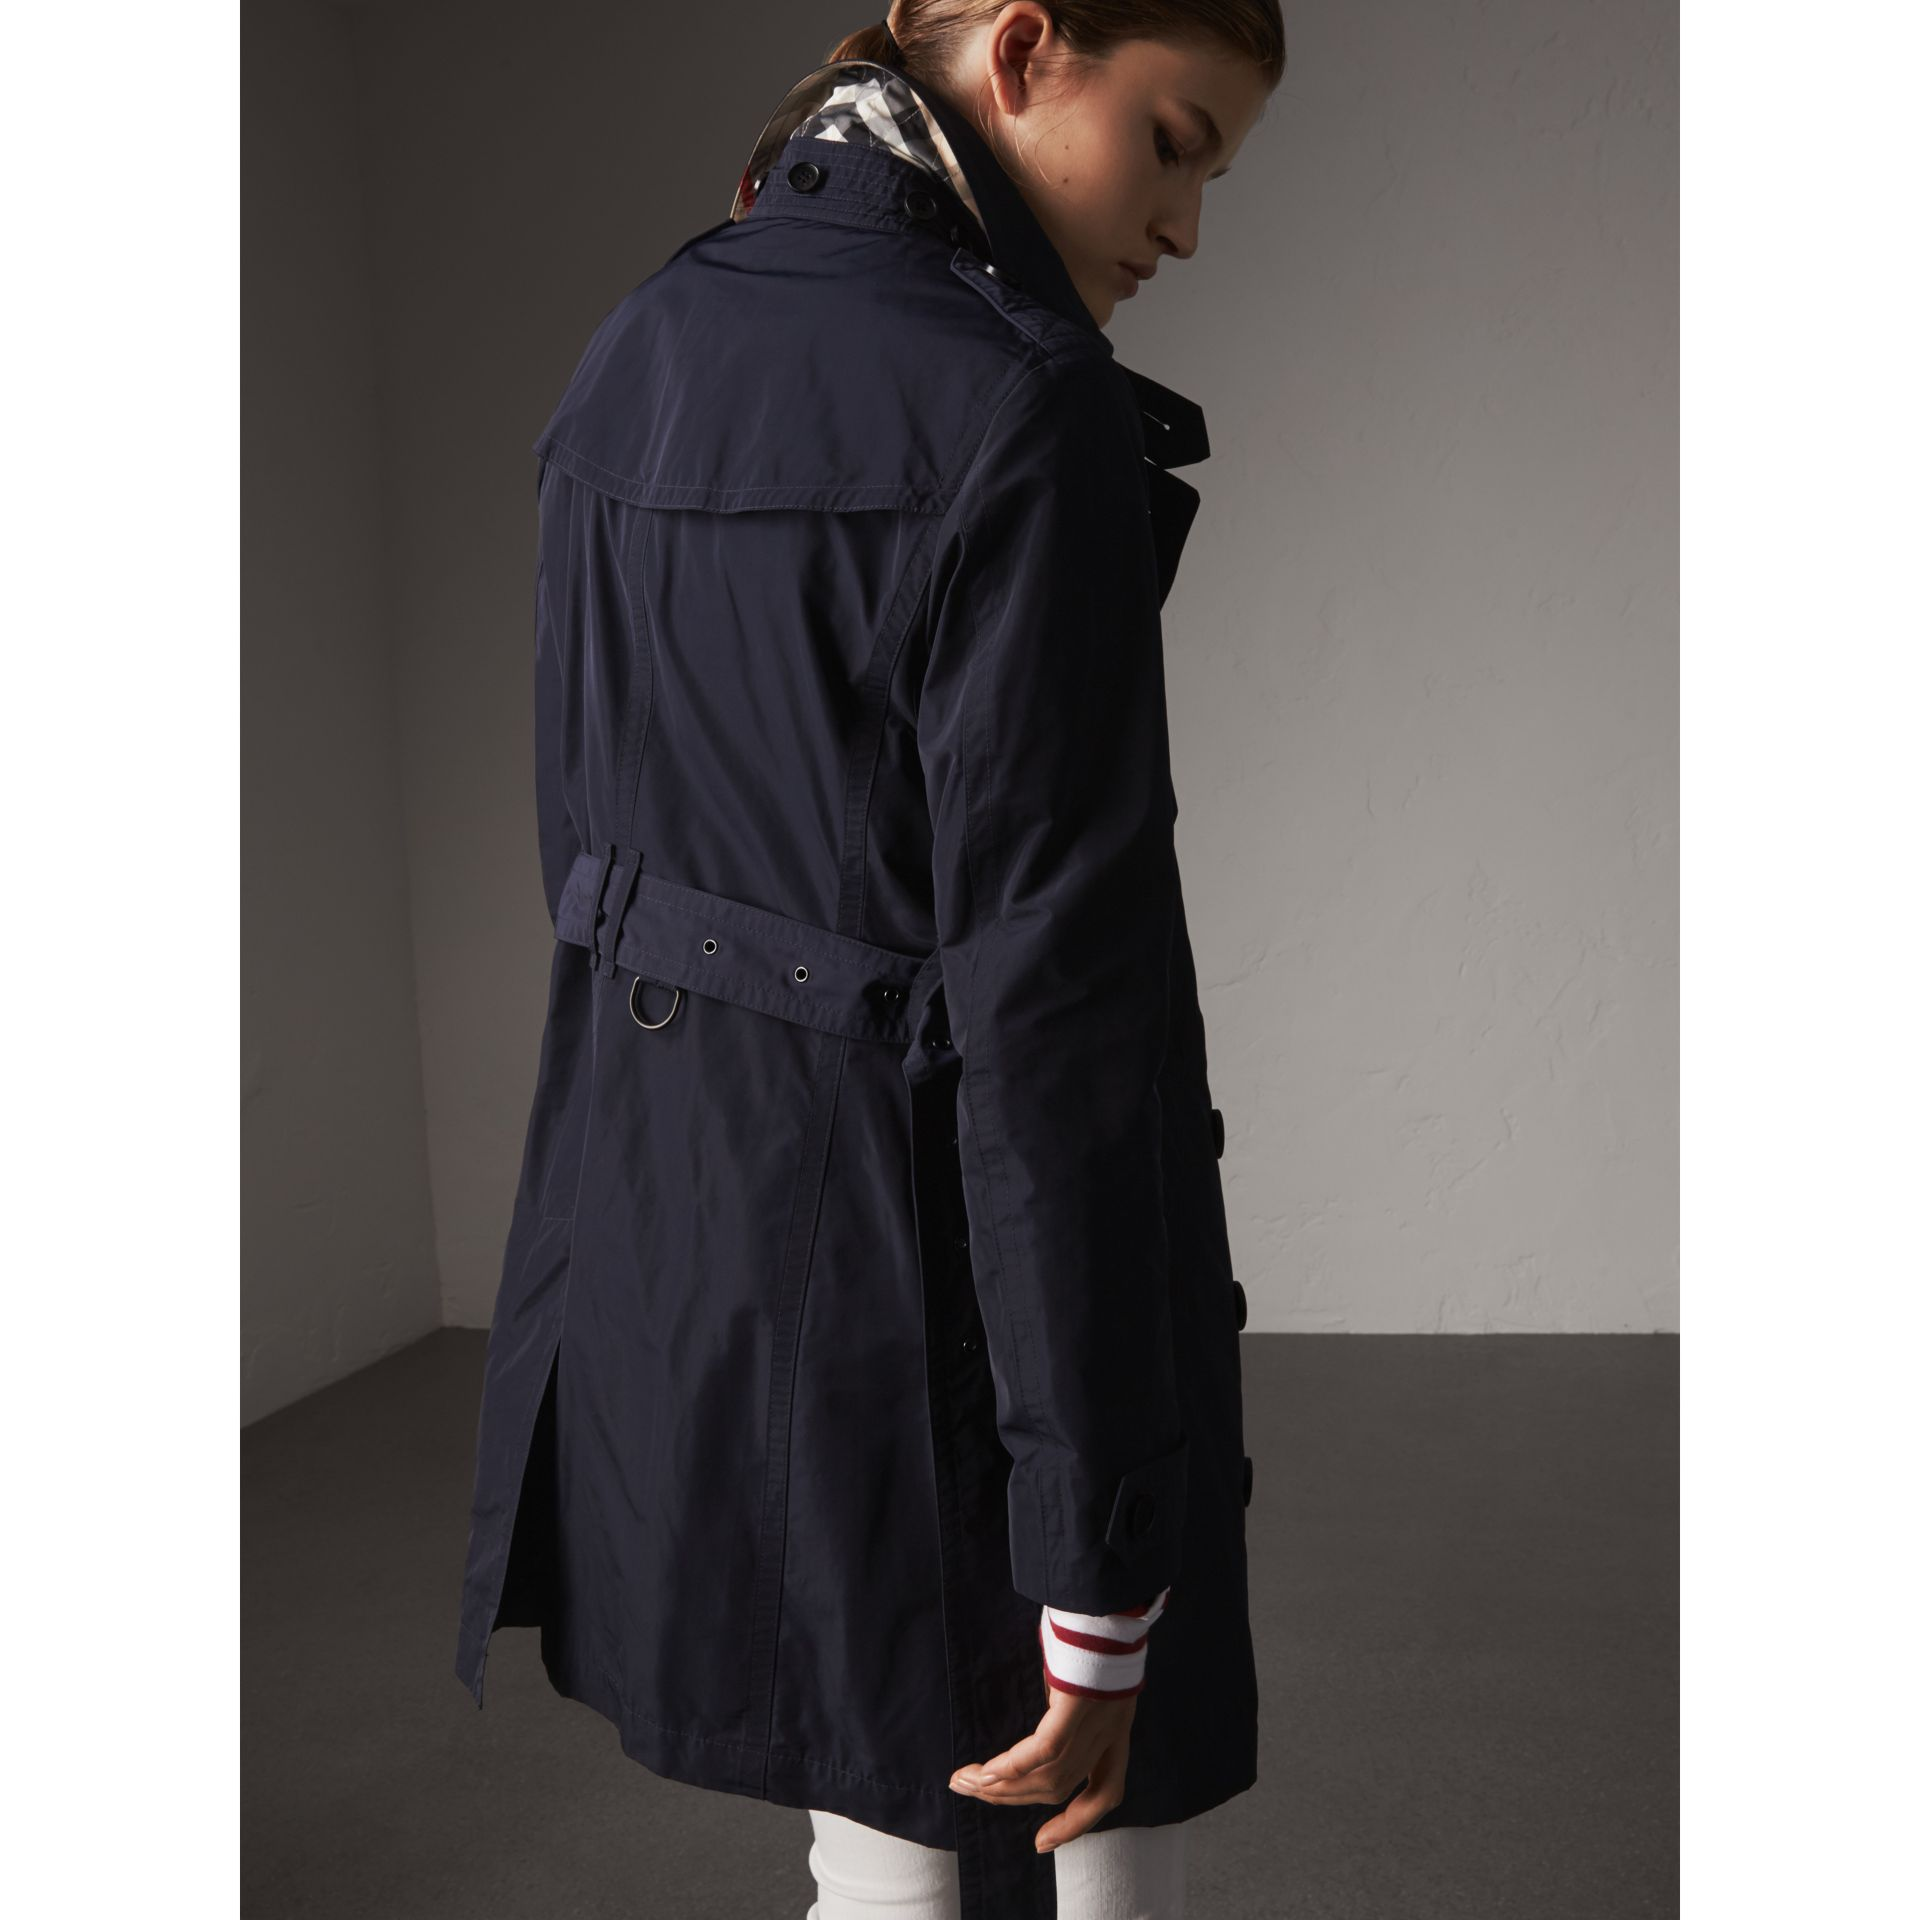 Taffeta Trench Coat with Detachable Hood in Navy - Women | Burberry United Kingdom - gallery image 3